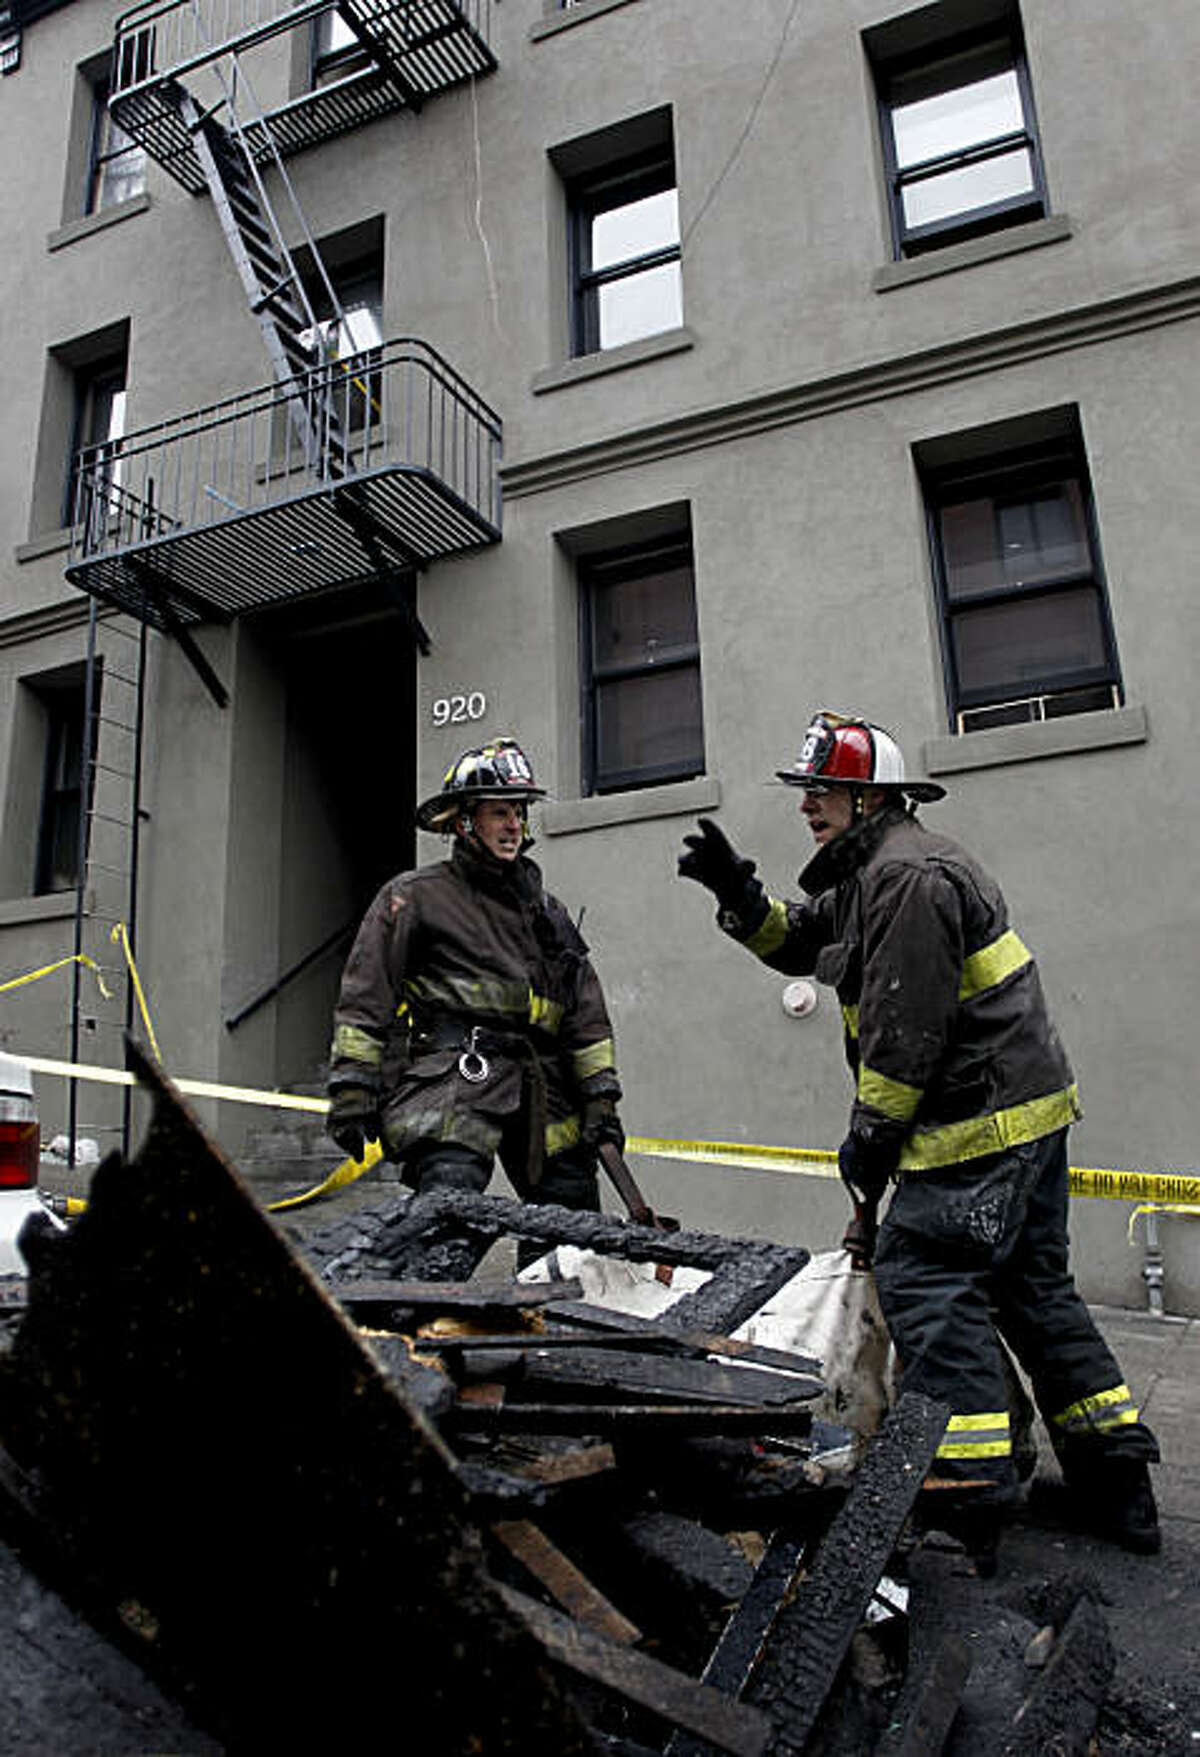 San Francisco firefighters, Rock Plychik, (left) and Pat Steele of Truck 16, remove debris from the burned building, after an early morning fire forced about 45 people from their apartment complex at 920 Montgomery Street, Calif. on Saturday Jan. 1, 2011